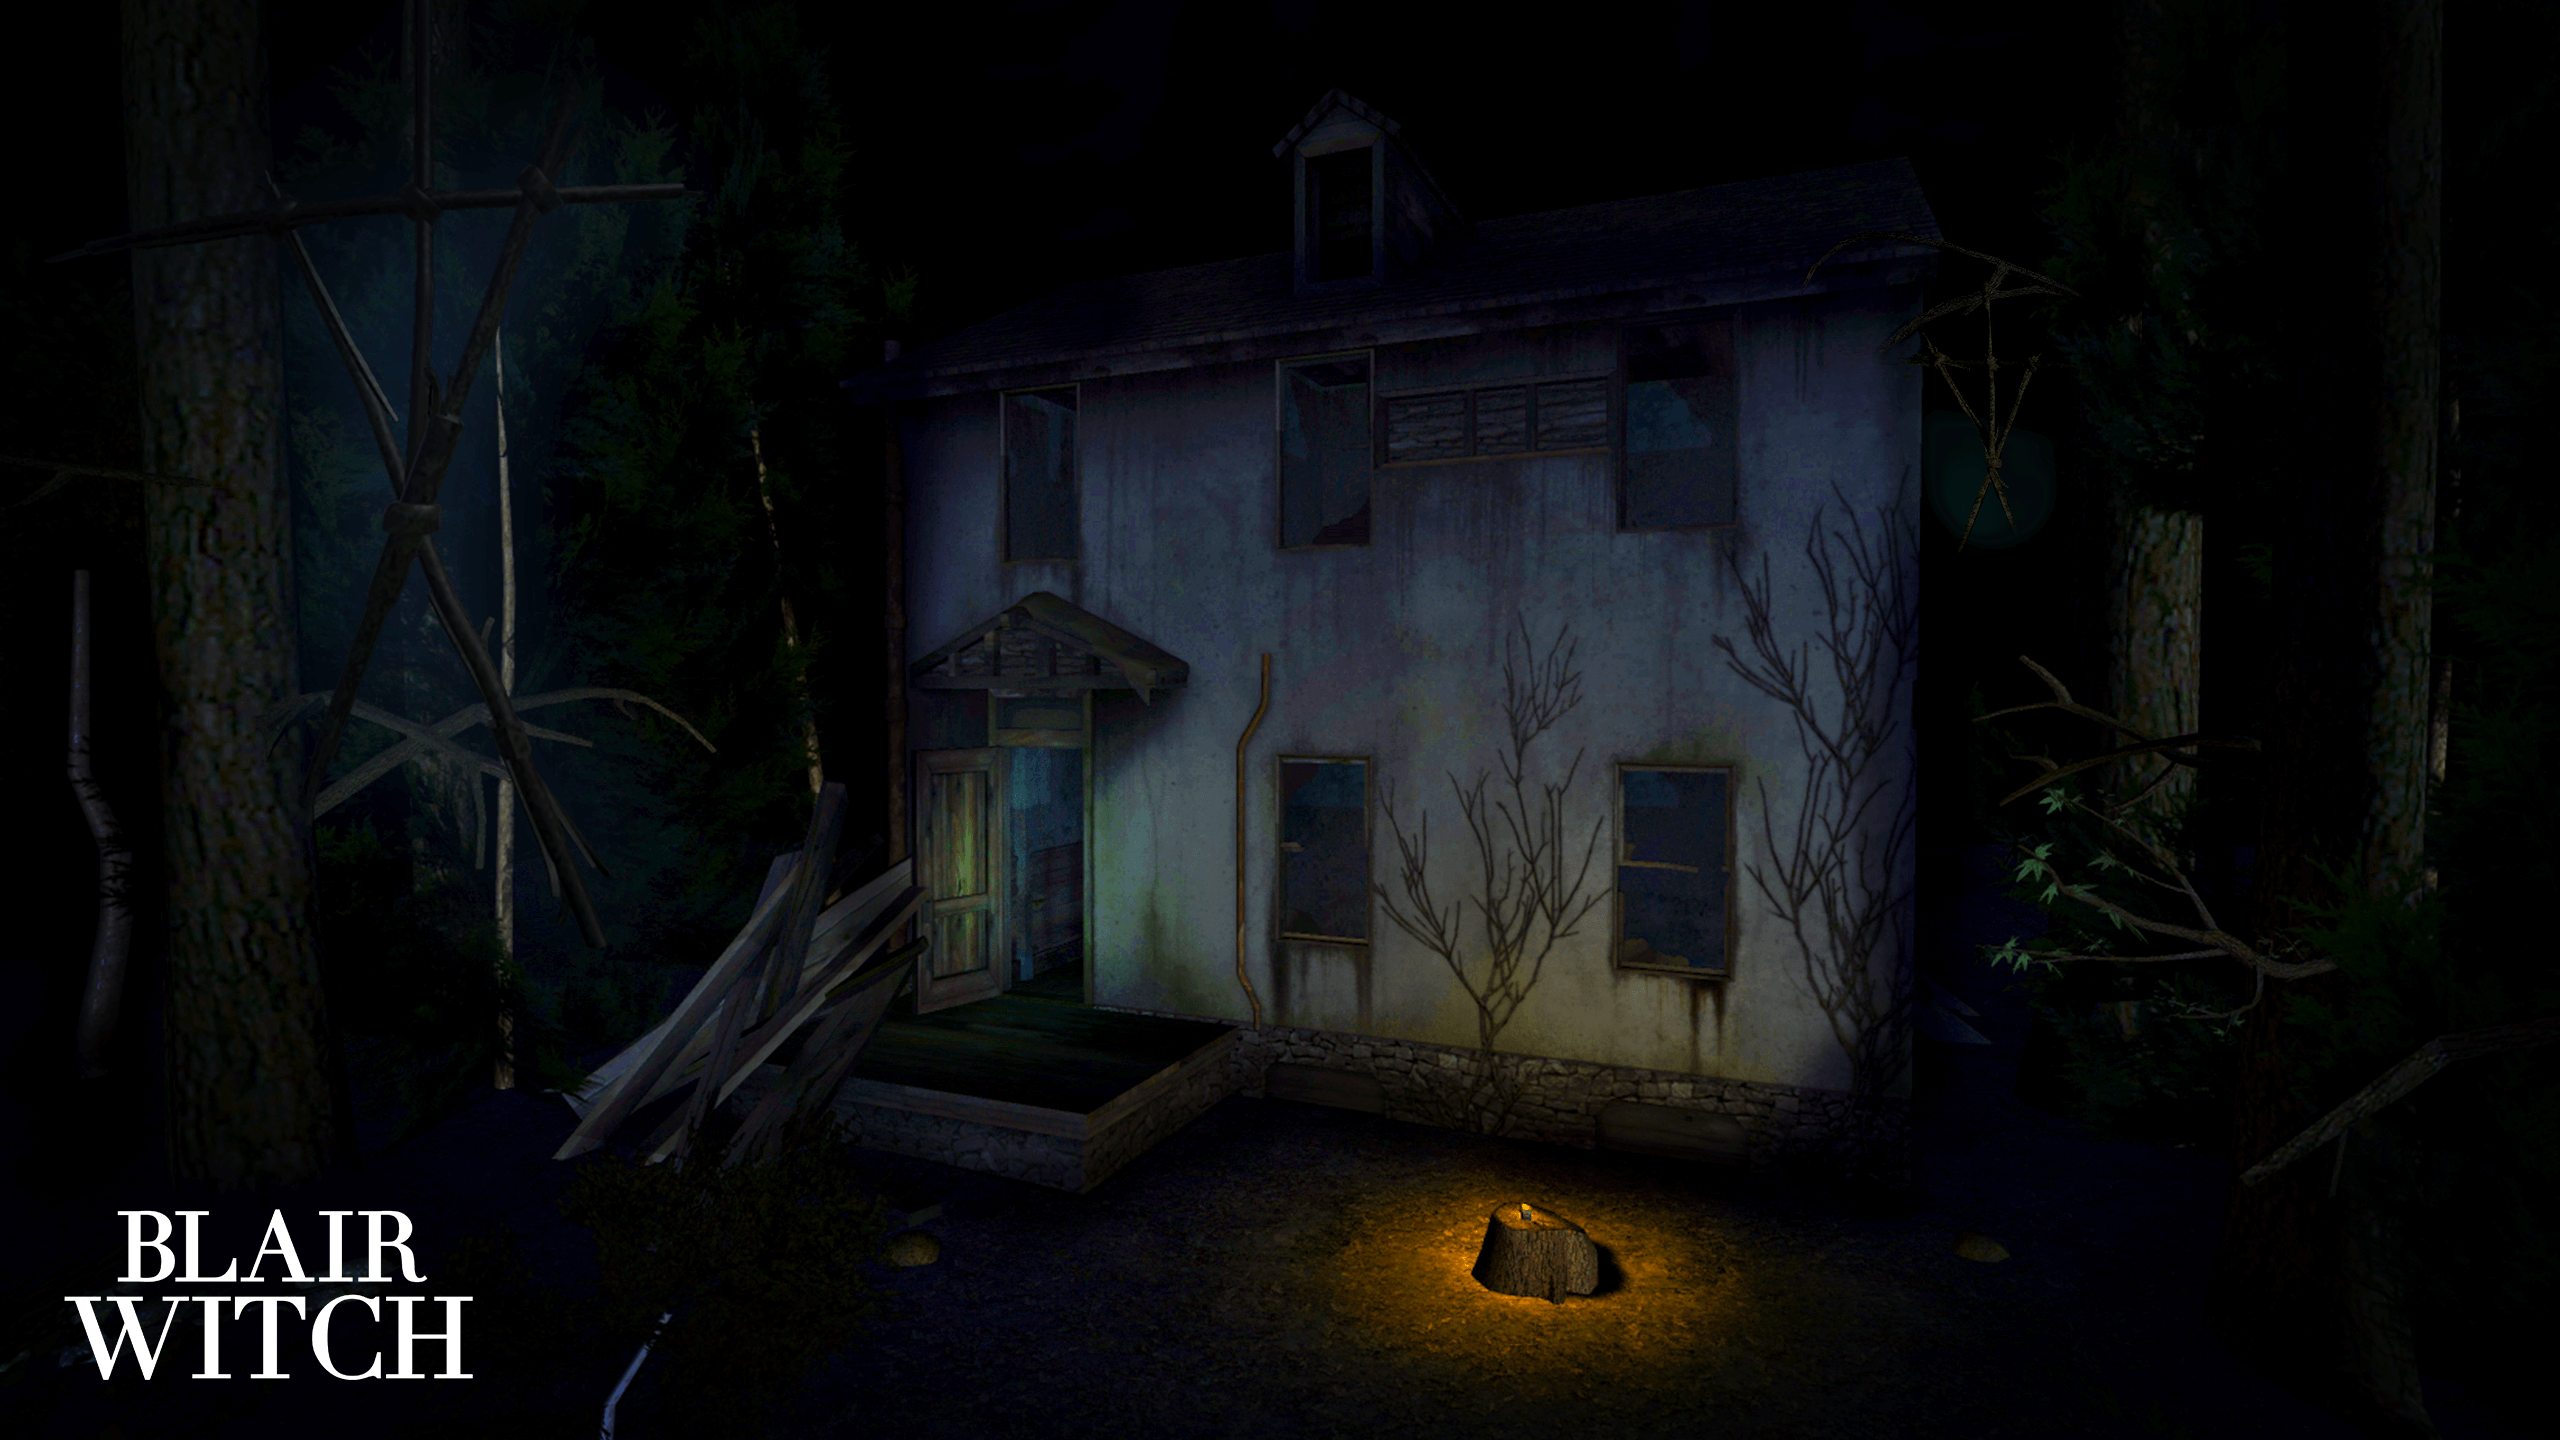 blair witch video game widescreen wallpaper 68763